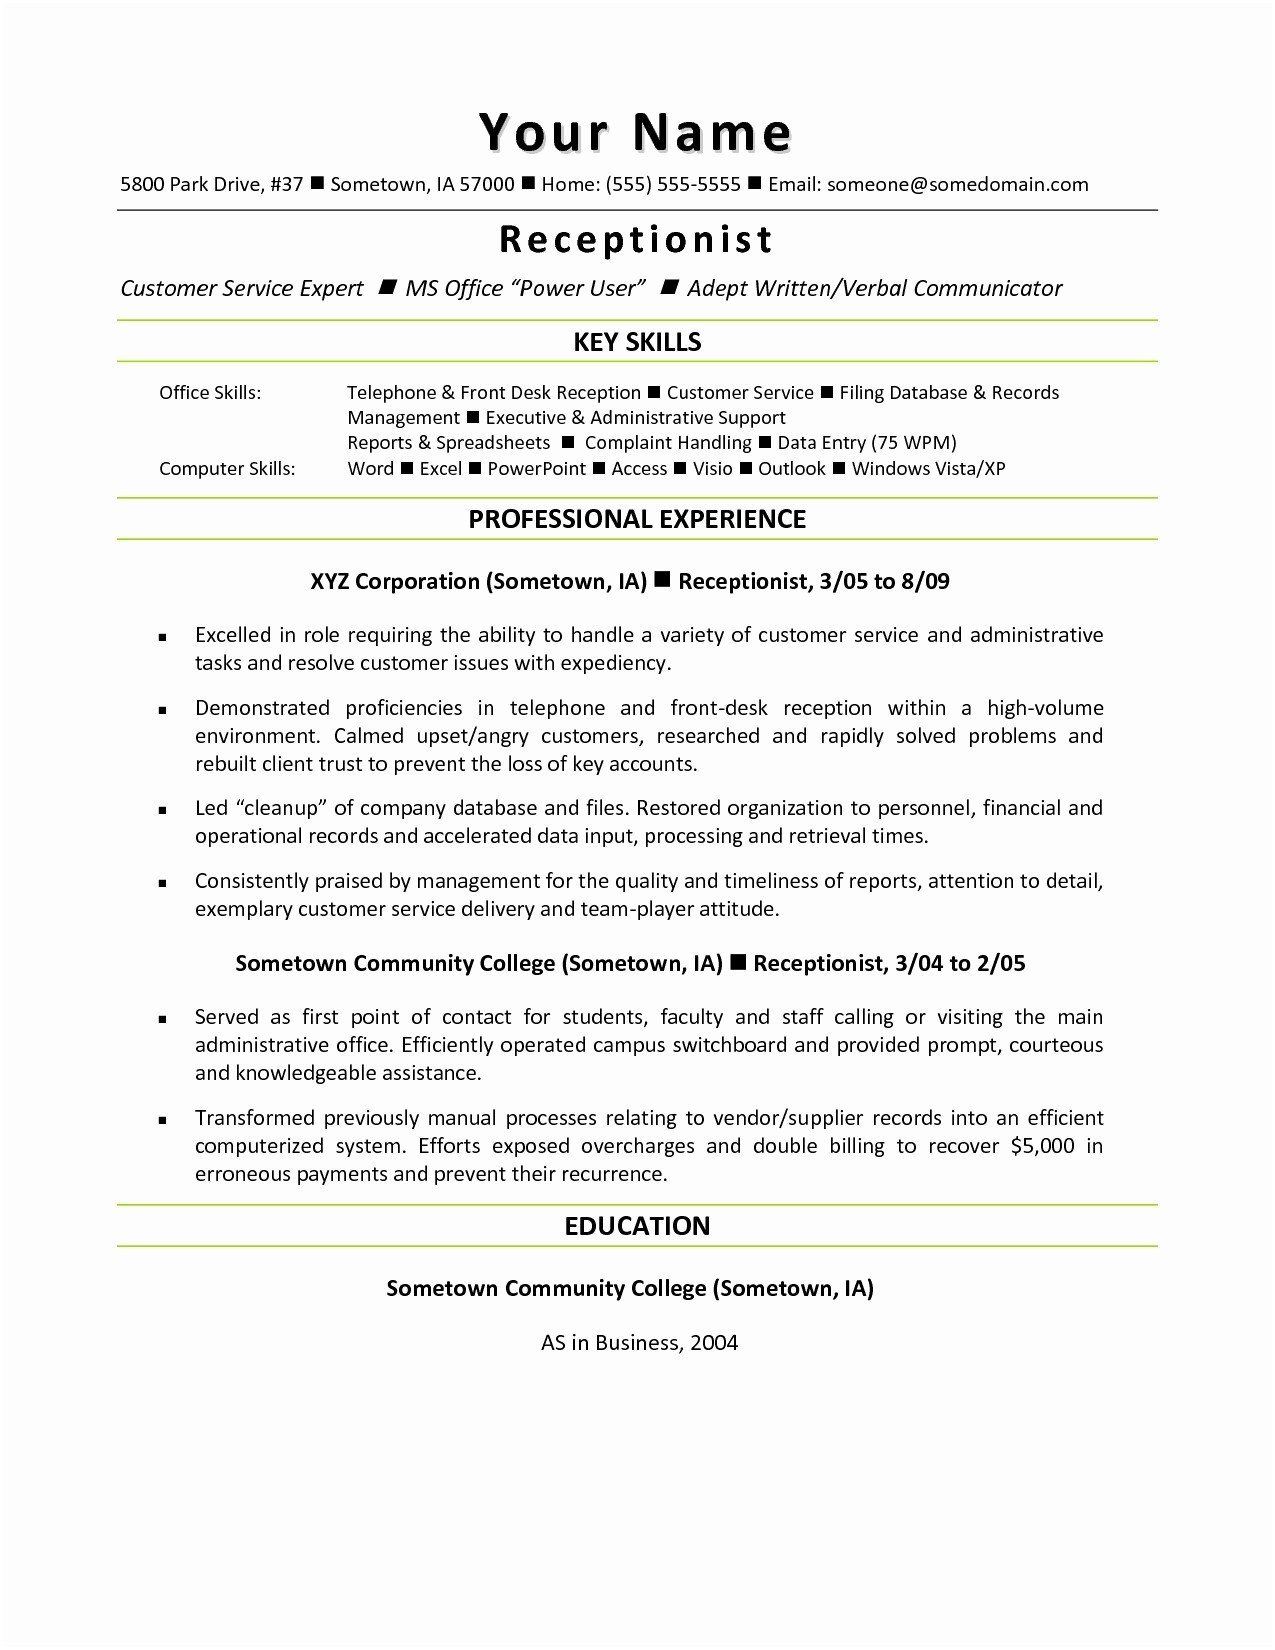 Finance Cover Letter Template - Sample Cover Letter for Horticulture Job Inspirationa Resume Mail